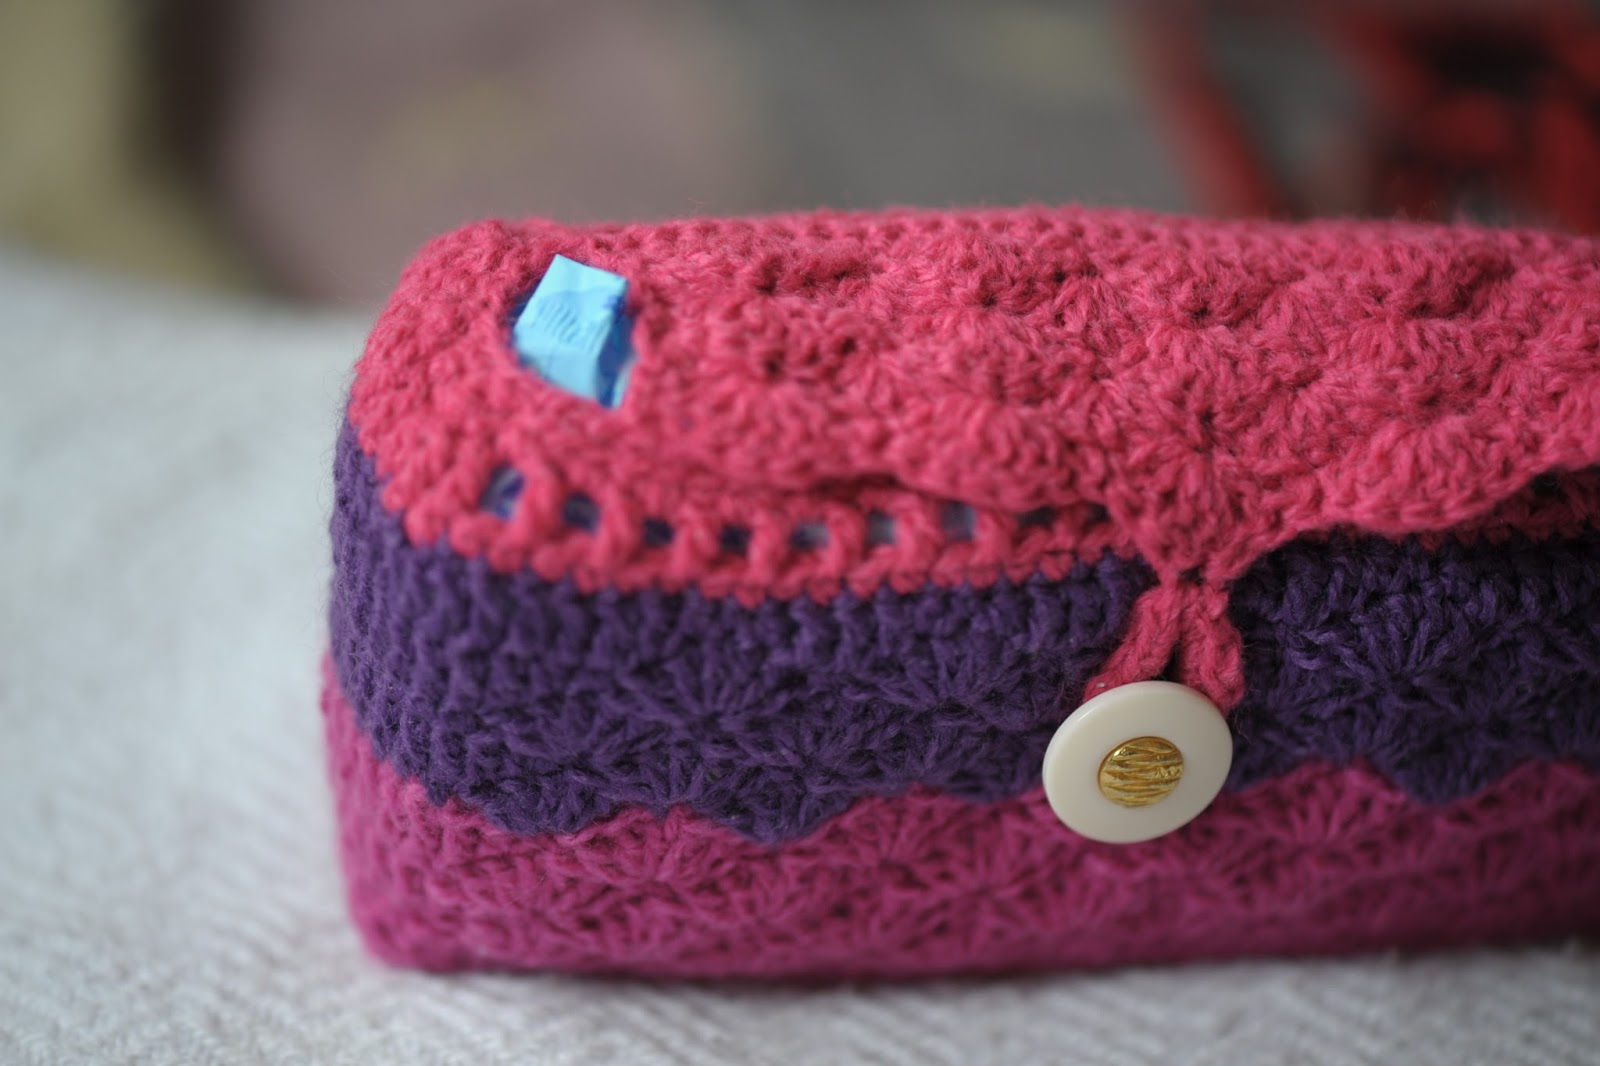 Crochet Toiletry Bag Pattern : Its a crafty world!: Crocheted Toiletry Bag